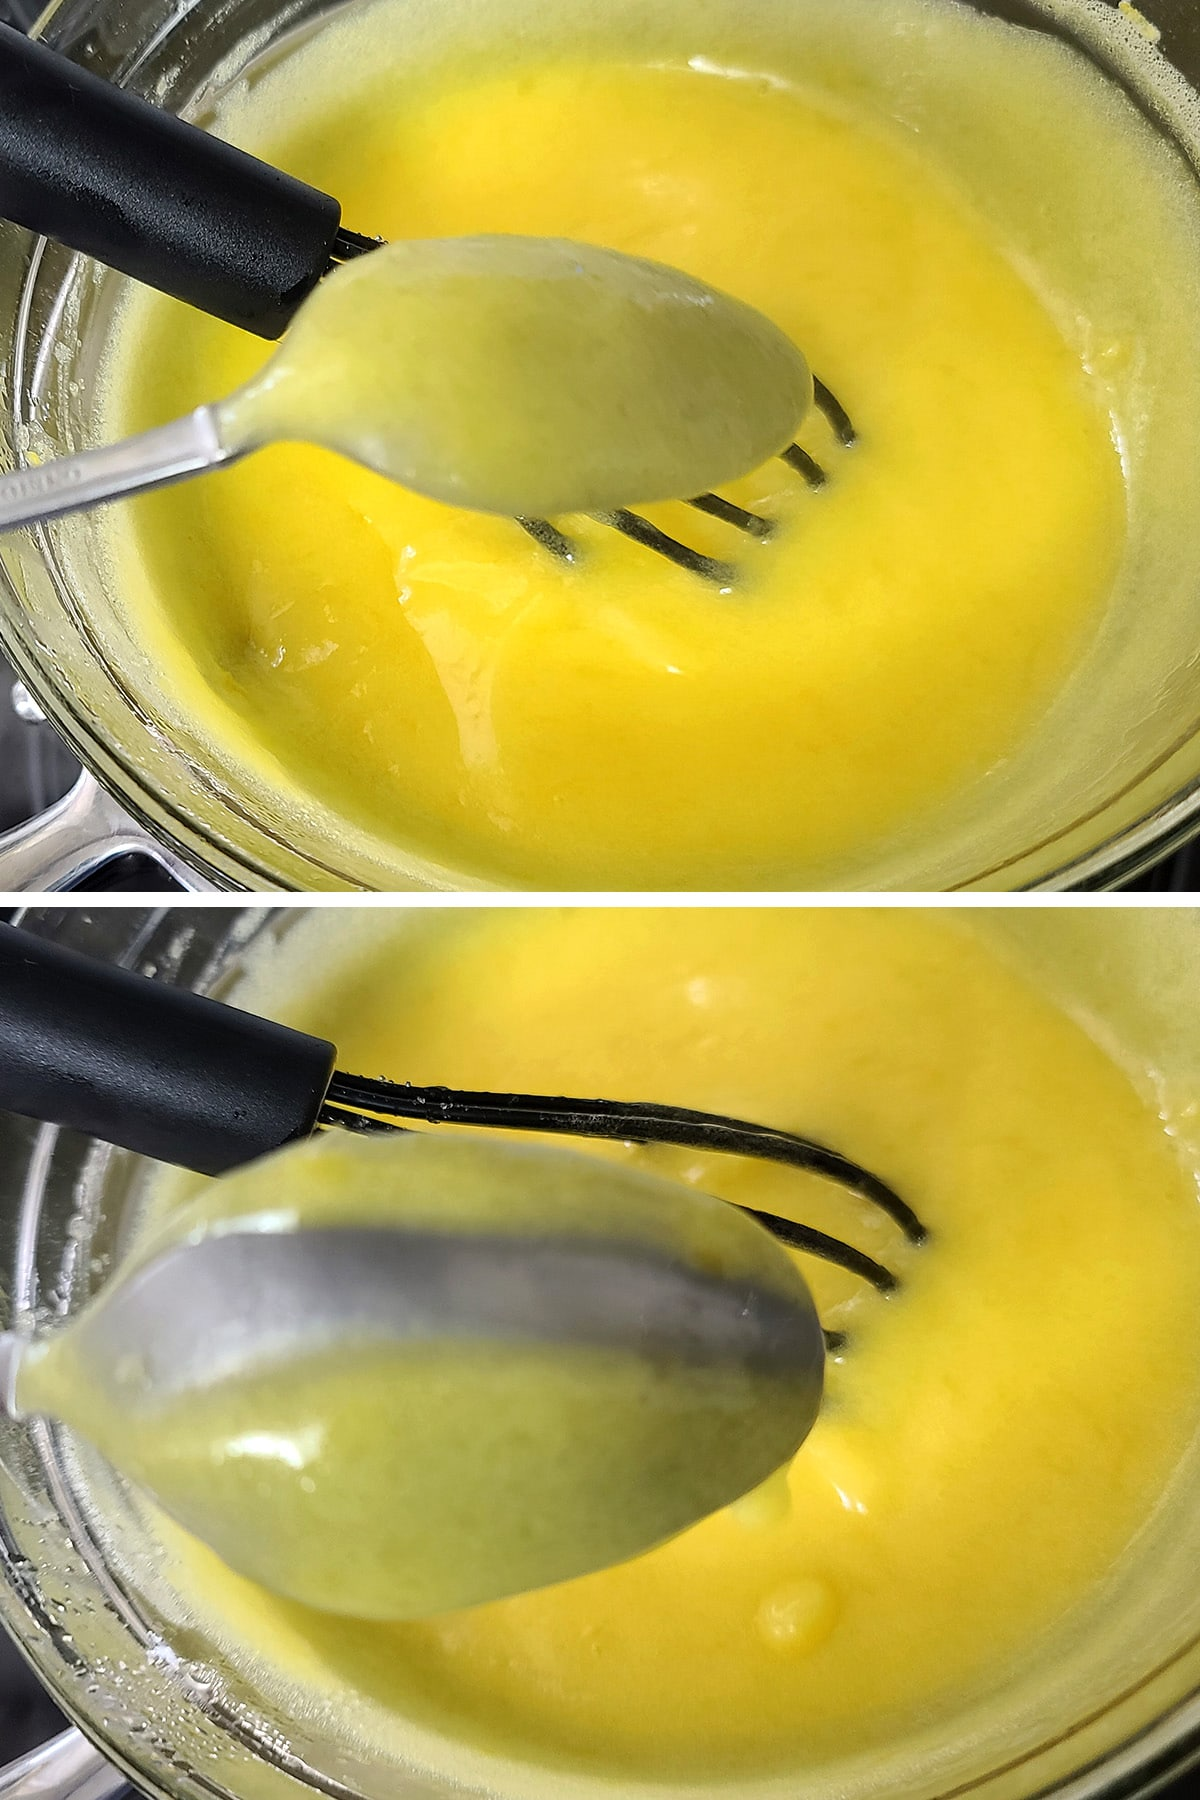 The back of a spoon being held over the bowl of lemon curd. There is a line of spoon  showing in the middle of the curd coating.